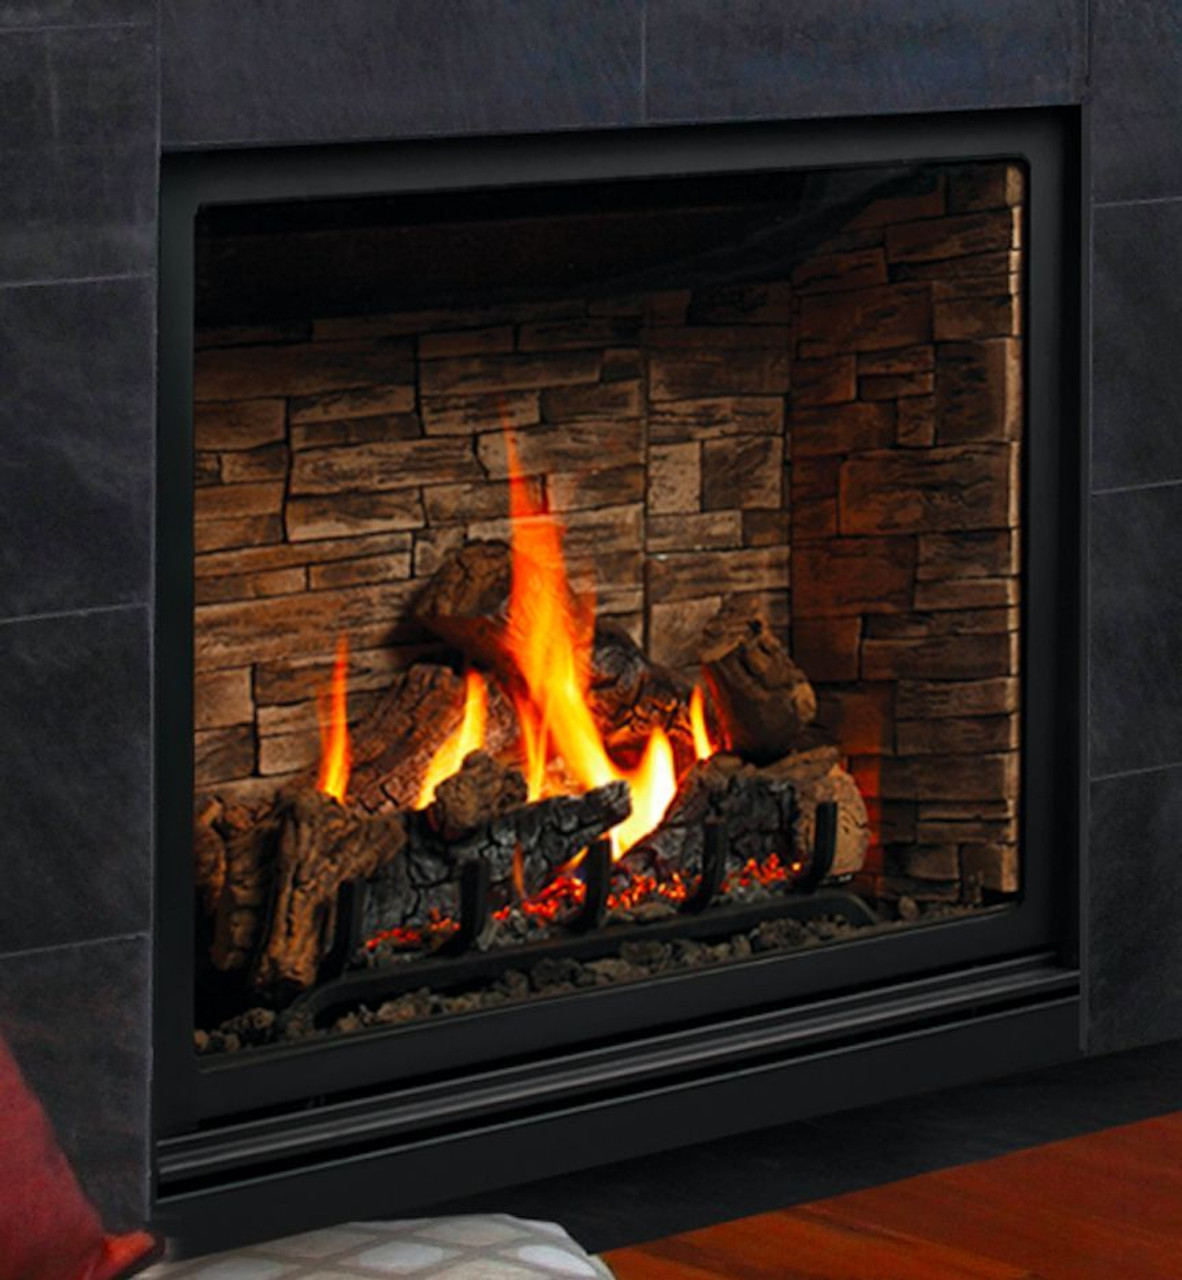 kingsman zrb46 linear gas fireplace